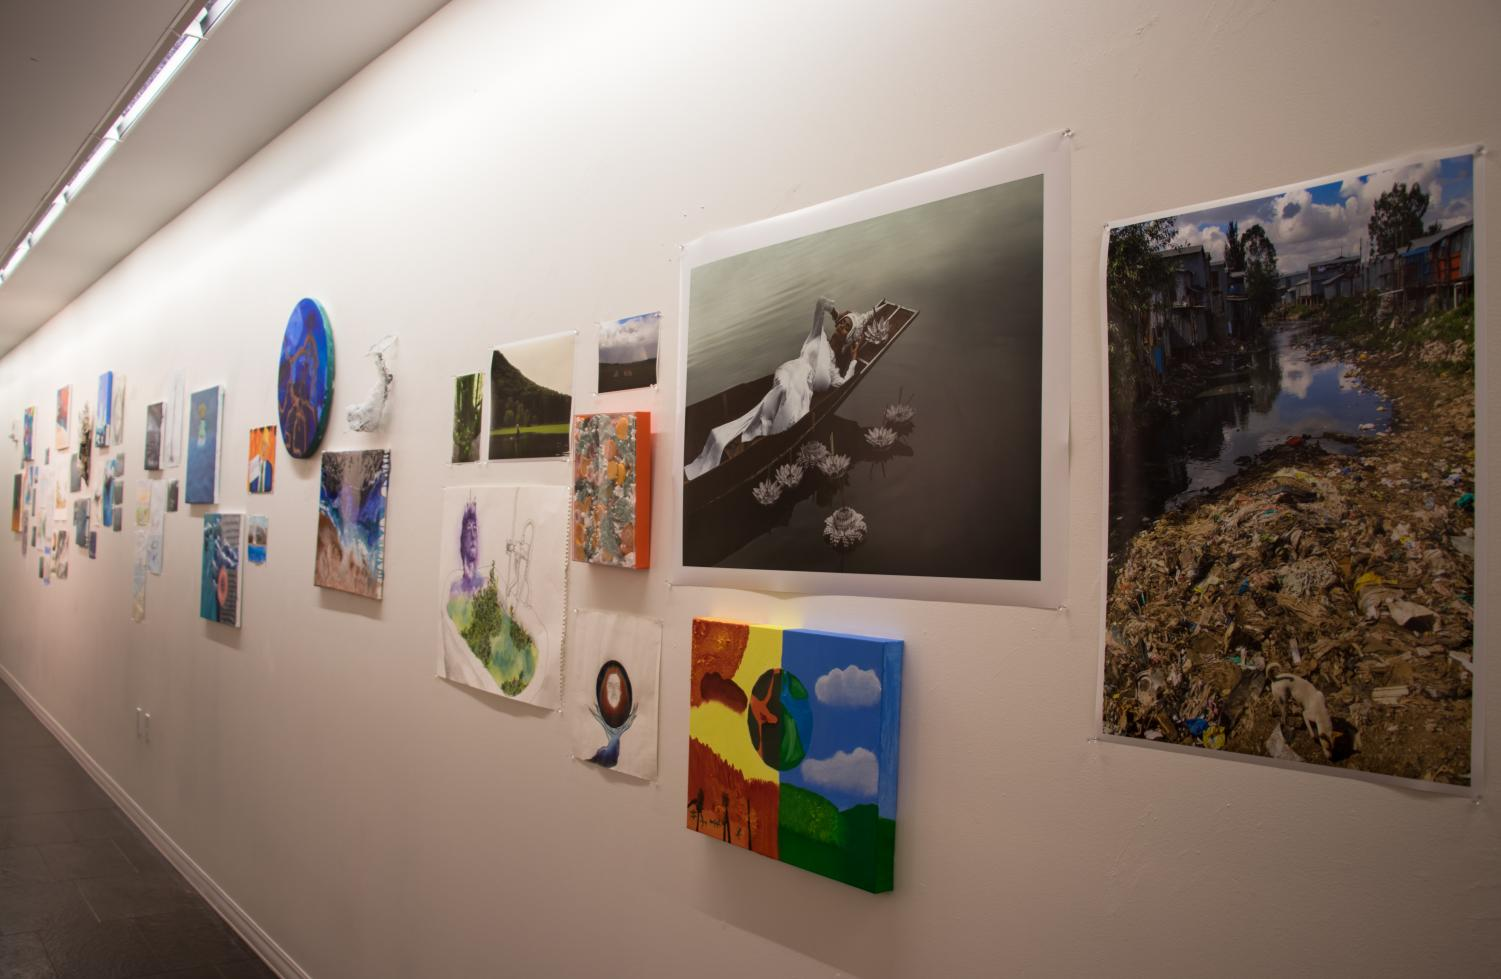 Works by teachers and students hang in the Walkway Gallery